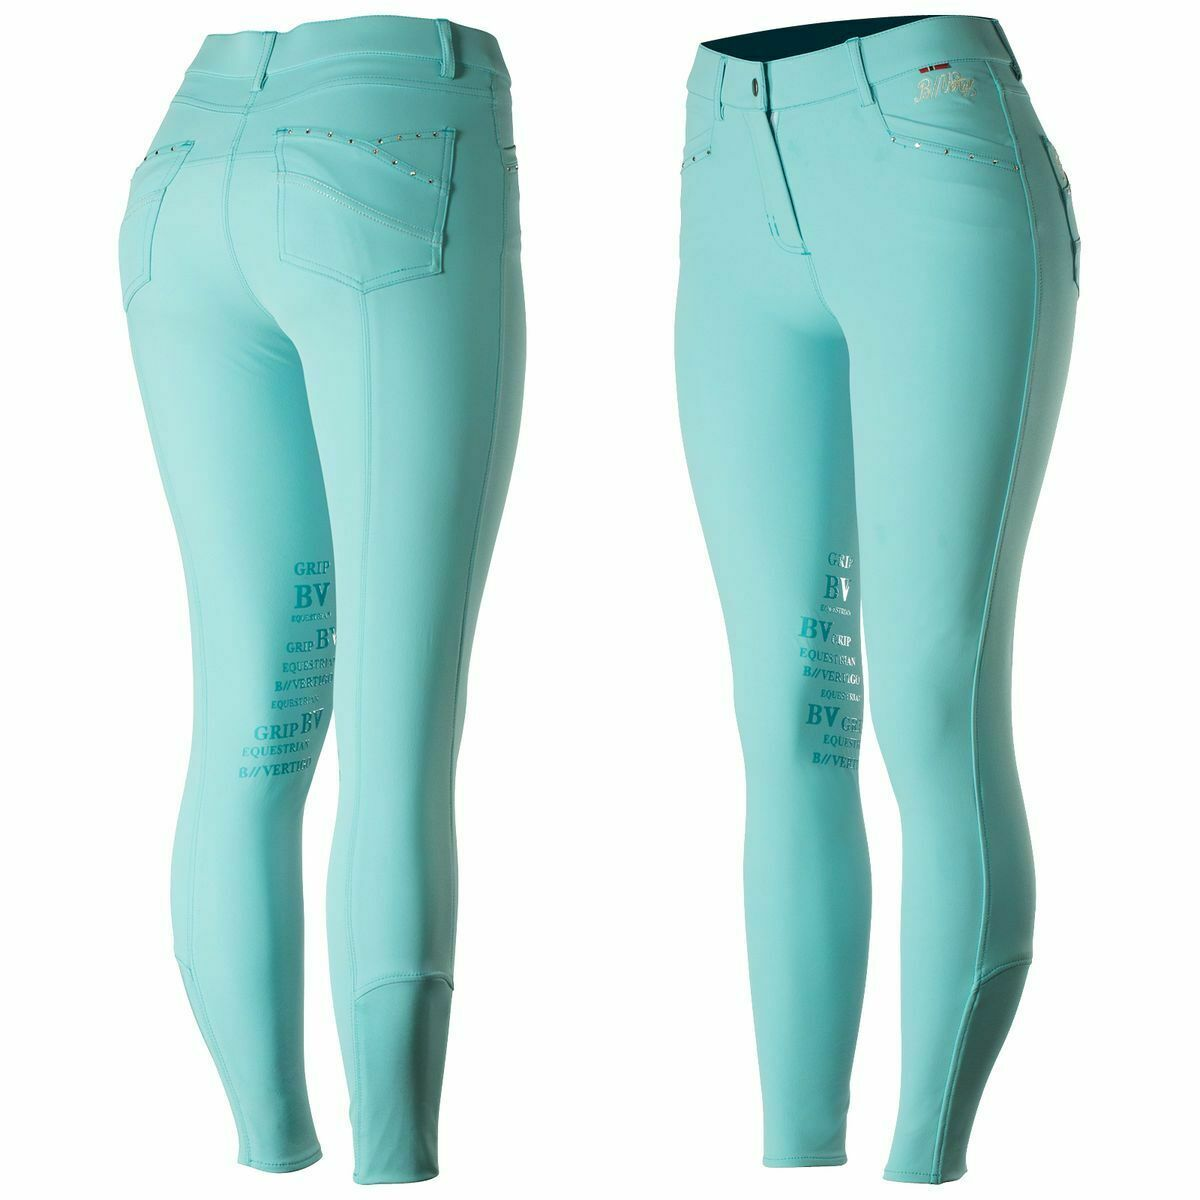 B. verdeigo Olivia Knee Patch Breeches gratuito SHIPPING